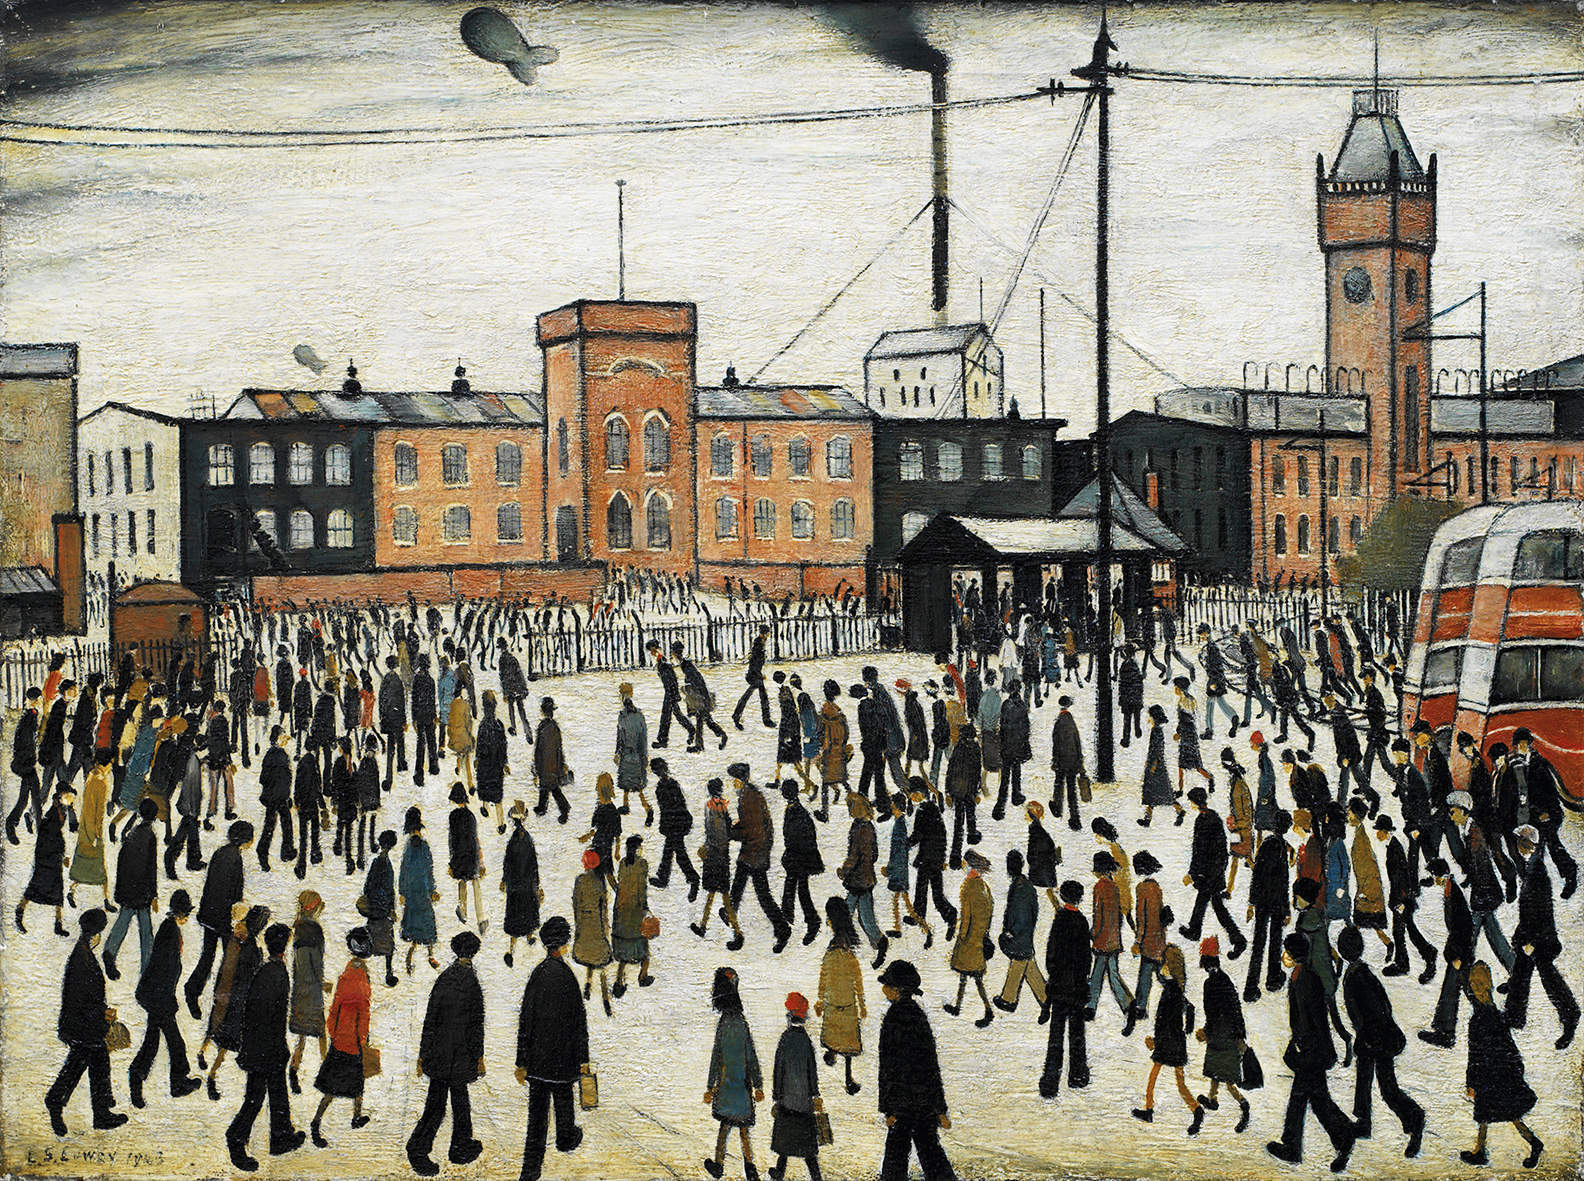 LS Lowry Going to Work painting